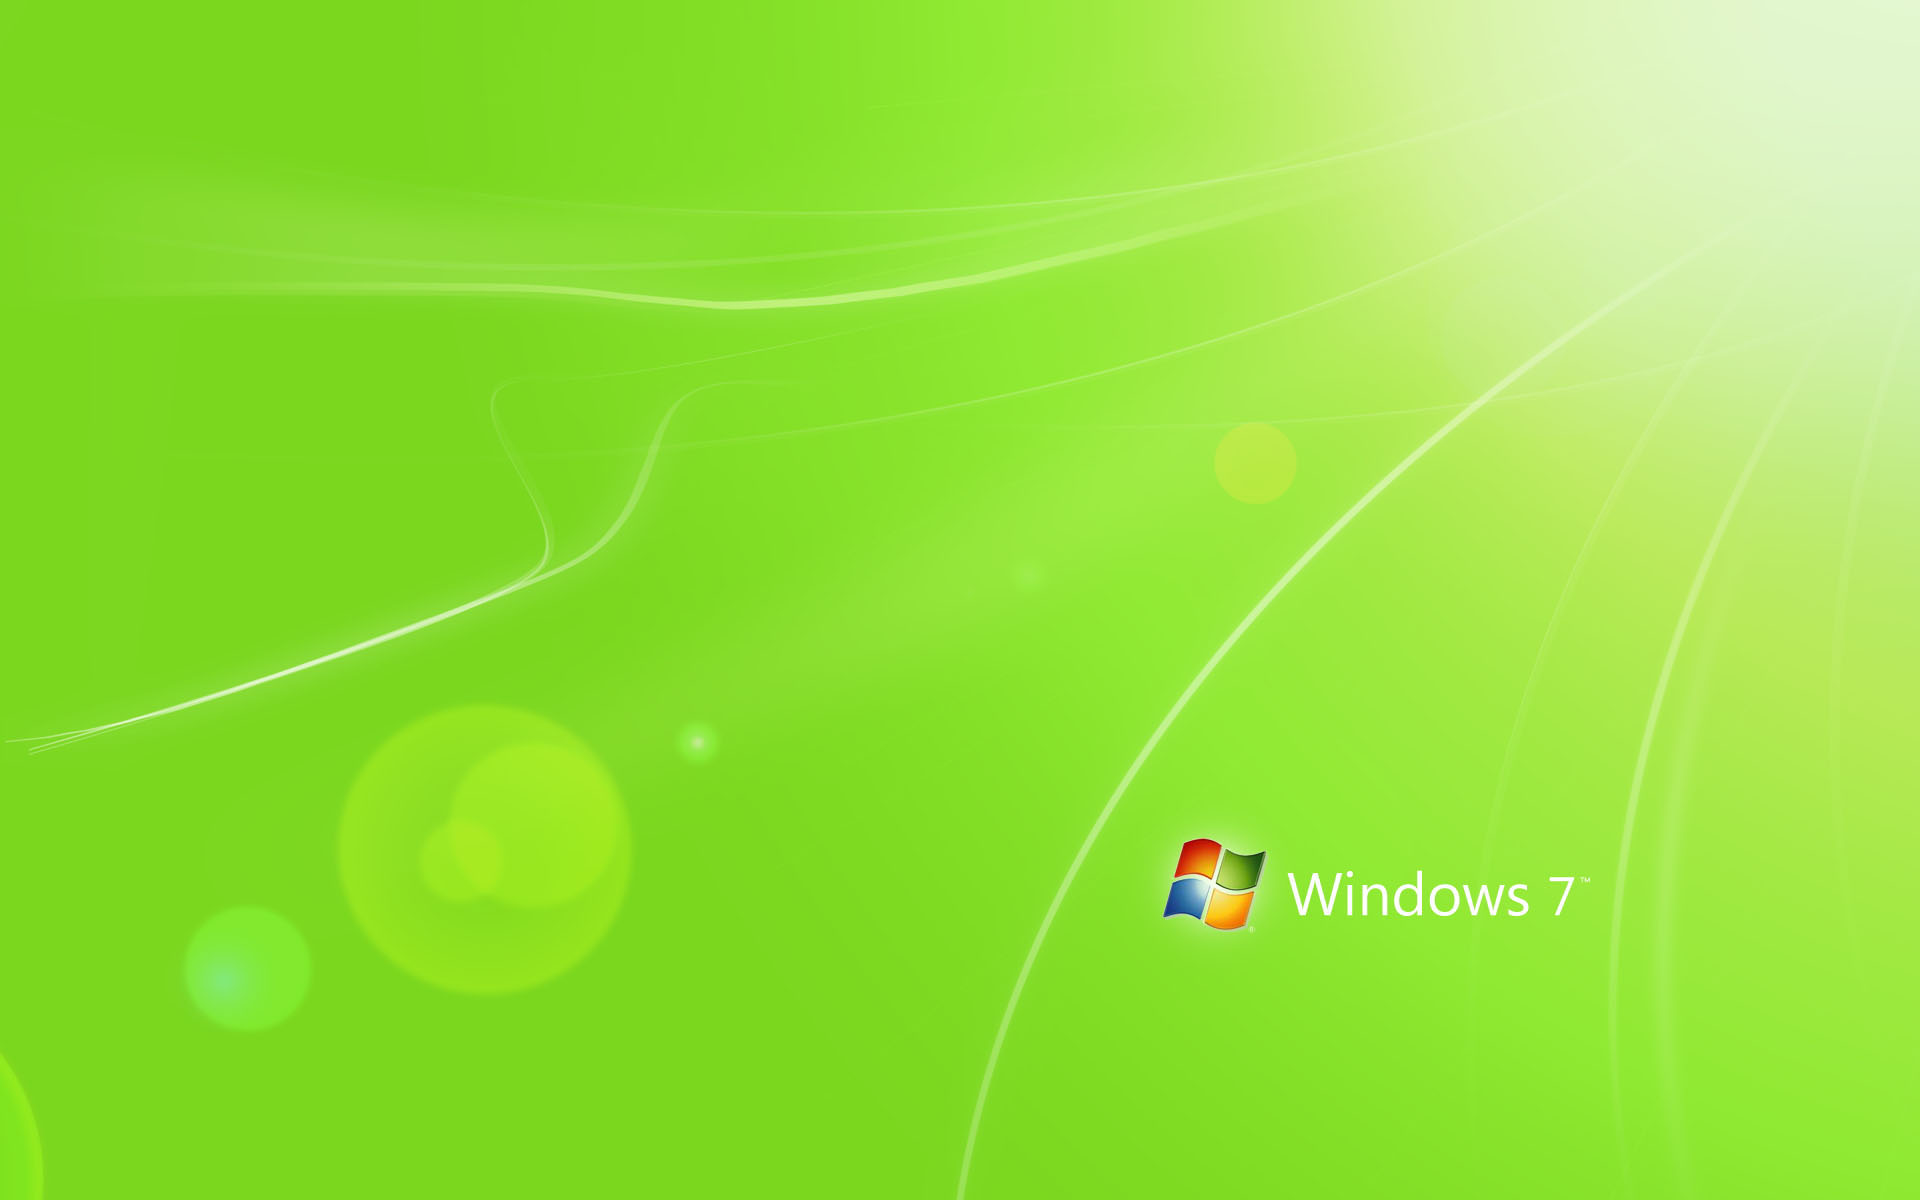 Windows 7 Green Wallpaper High Resolution 1920x1200